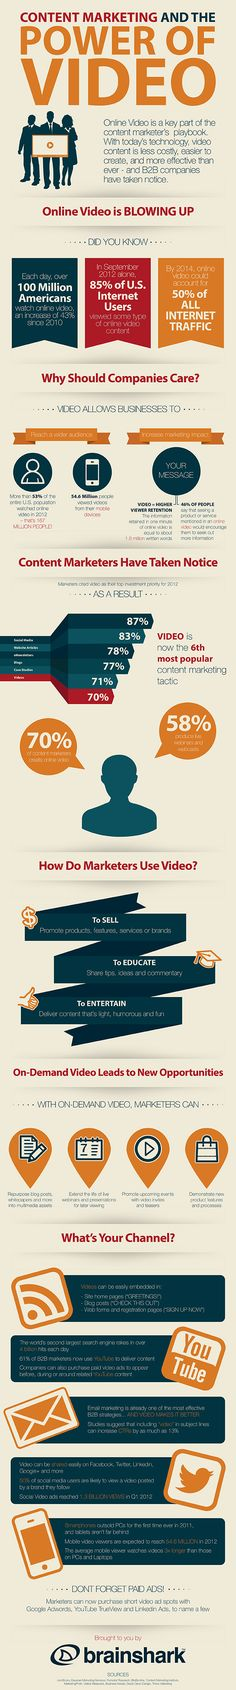 5 Statistics to Know About Online Video Marketing - Infographic - Automotive Digital Marketing Professional Community